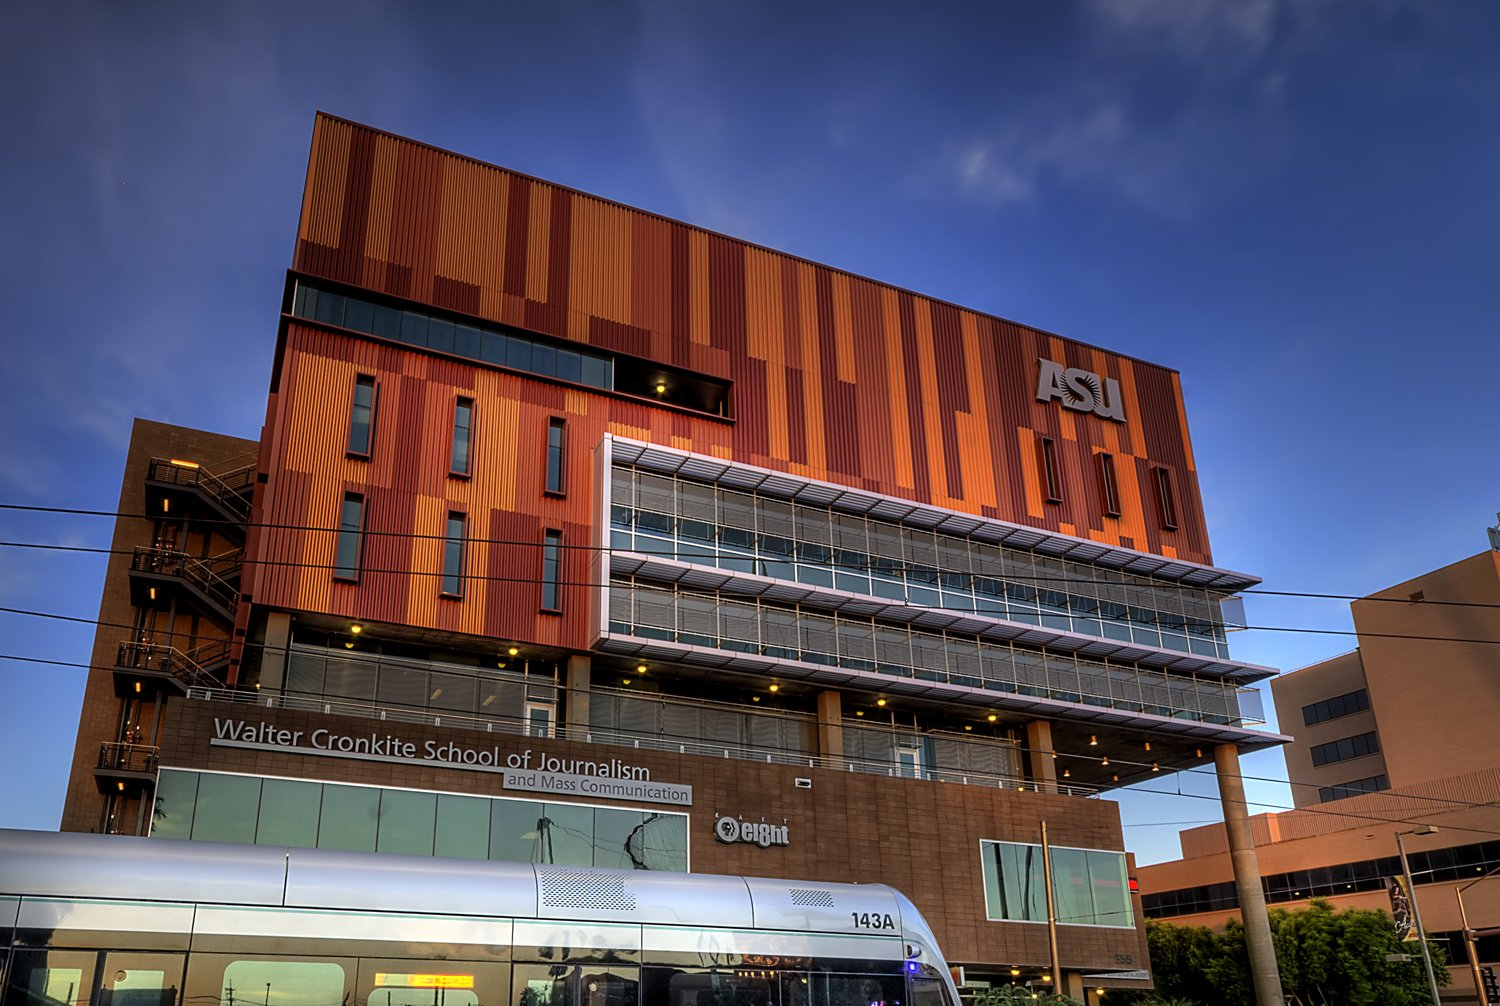 Modern photo of the Cronkite Building located in downtown Phoenix.